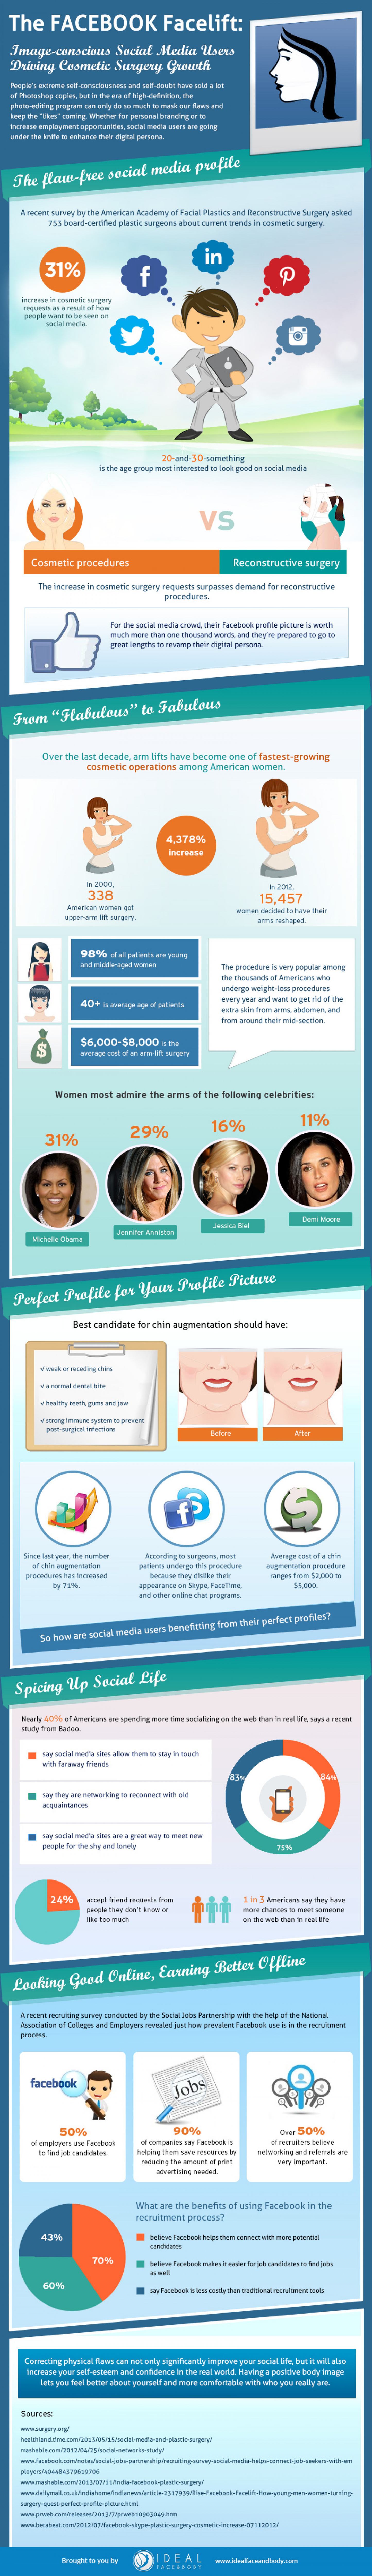 The Facebook Facelift: Image-conscious Social Media Users Driving Cosmetic Surgery Growth Infographic